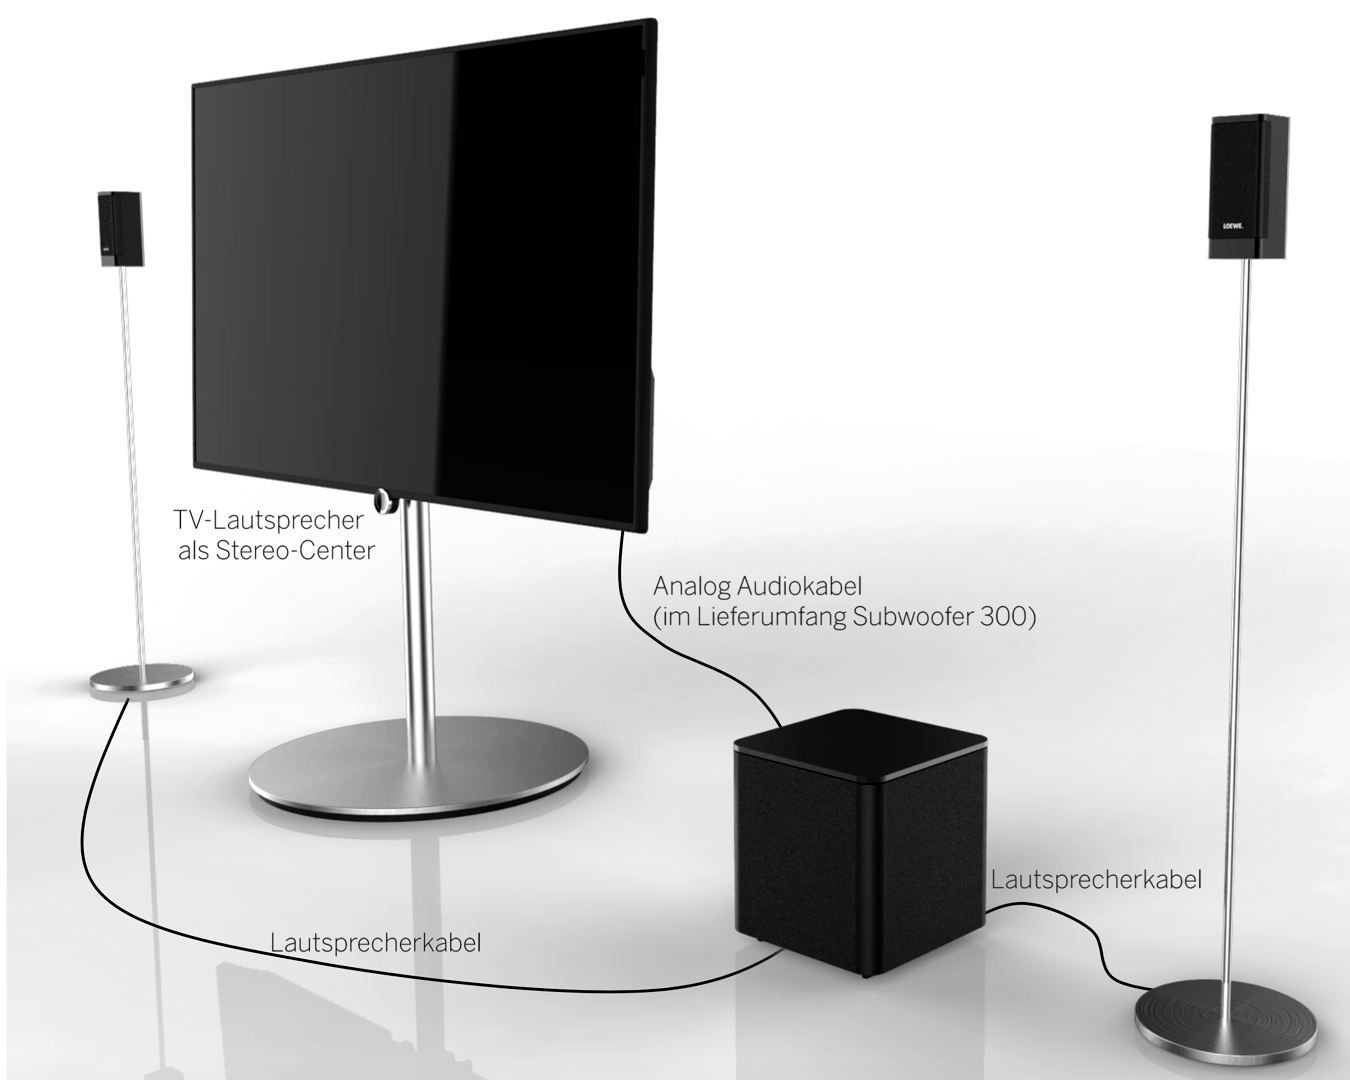 loewe klang1 subwoofer schwarz loewe fernseher. Black Bedroom Furniture Sets. Home Design Ideas